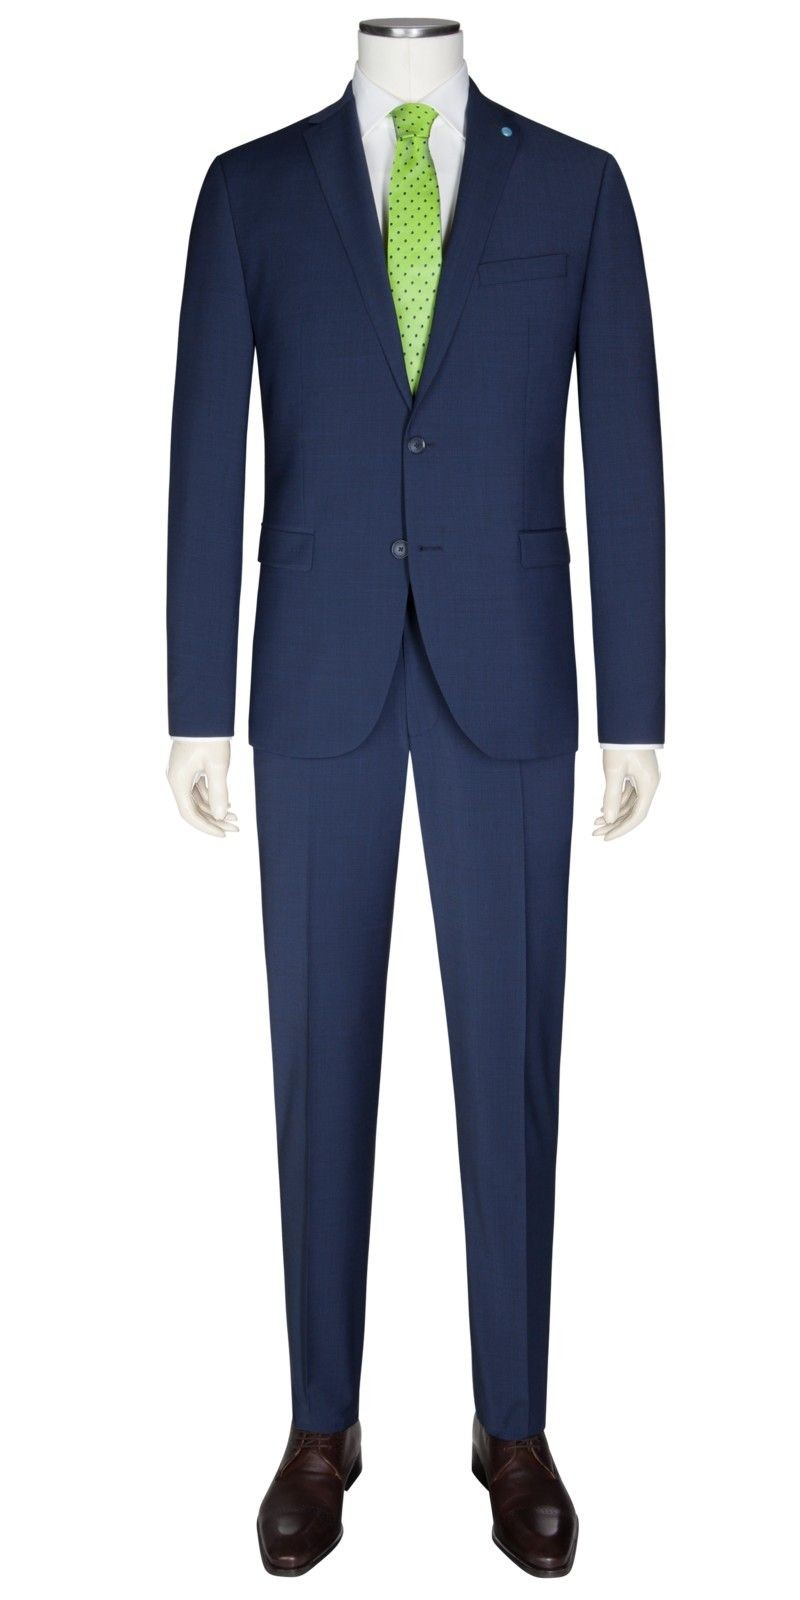 Pierre Cardin Suits